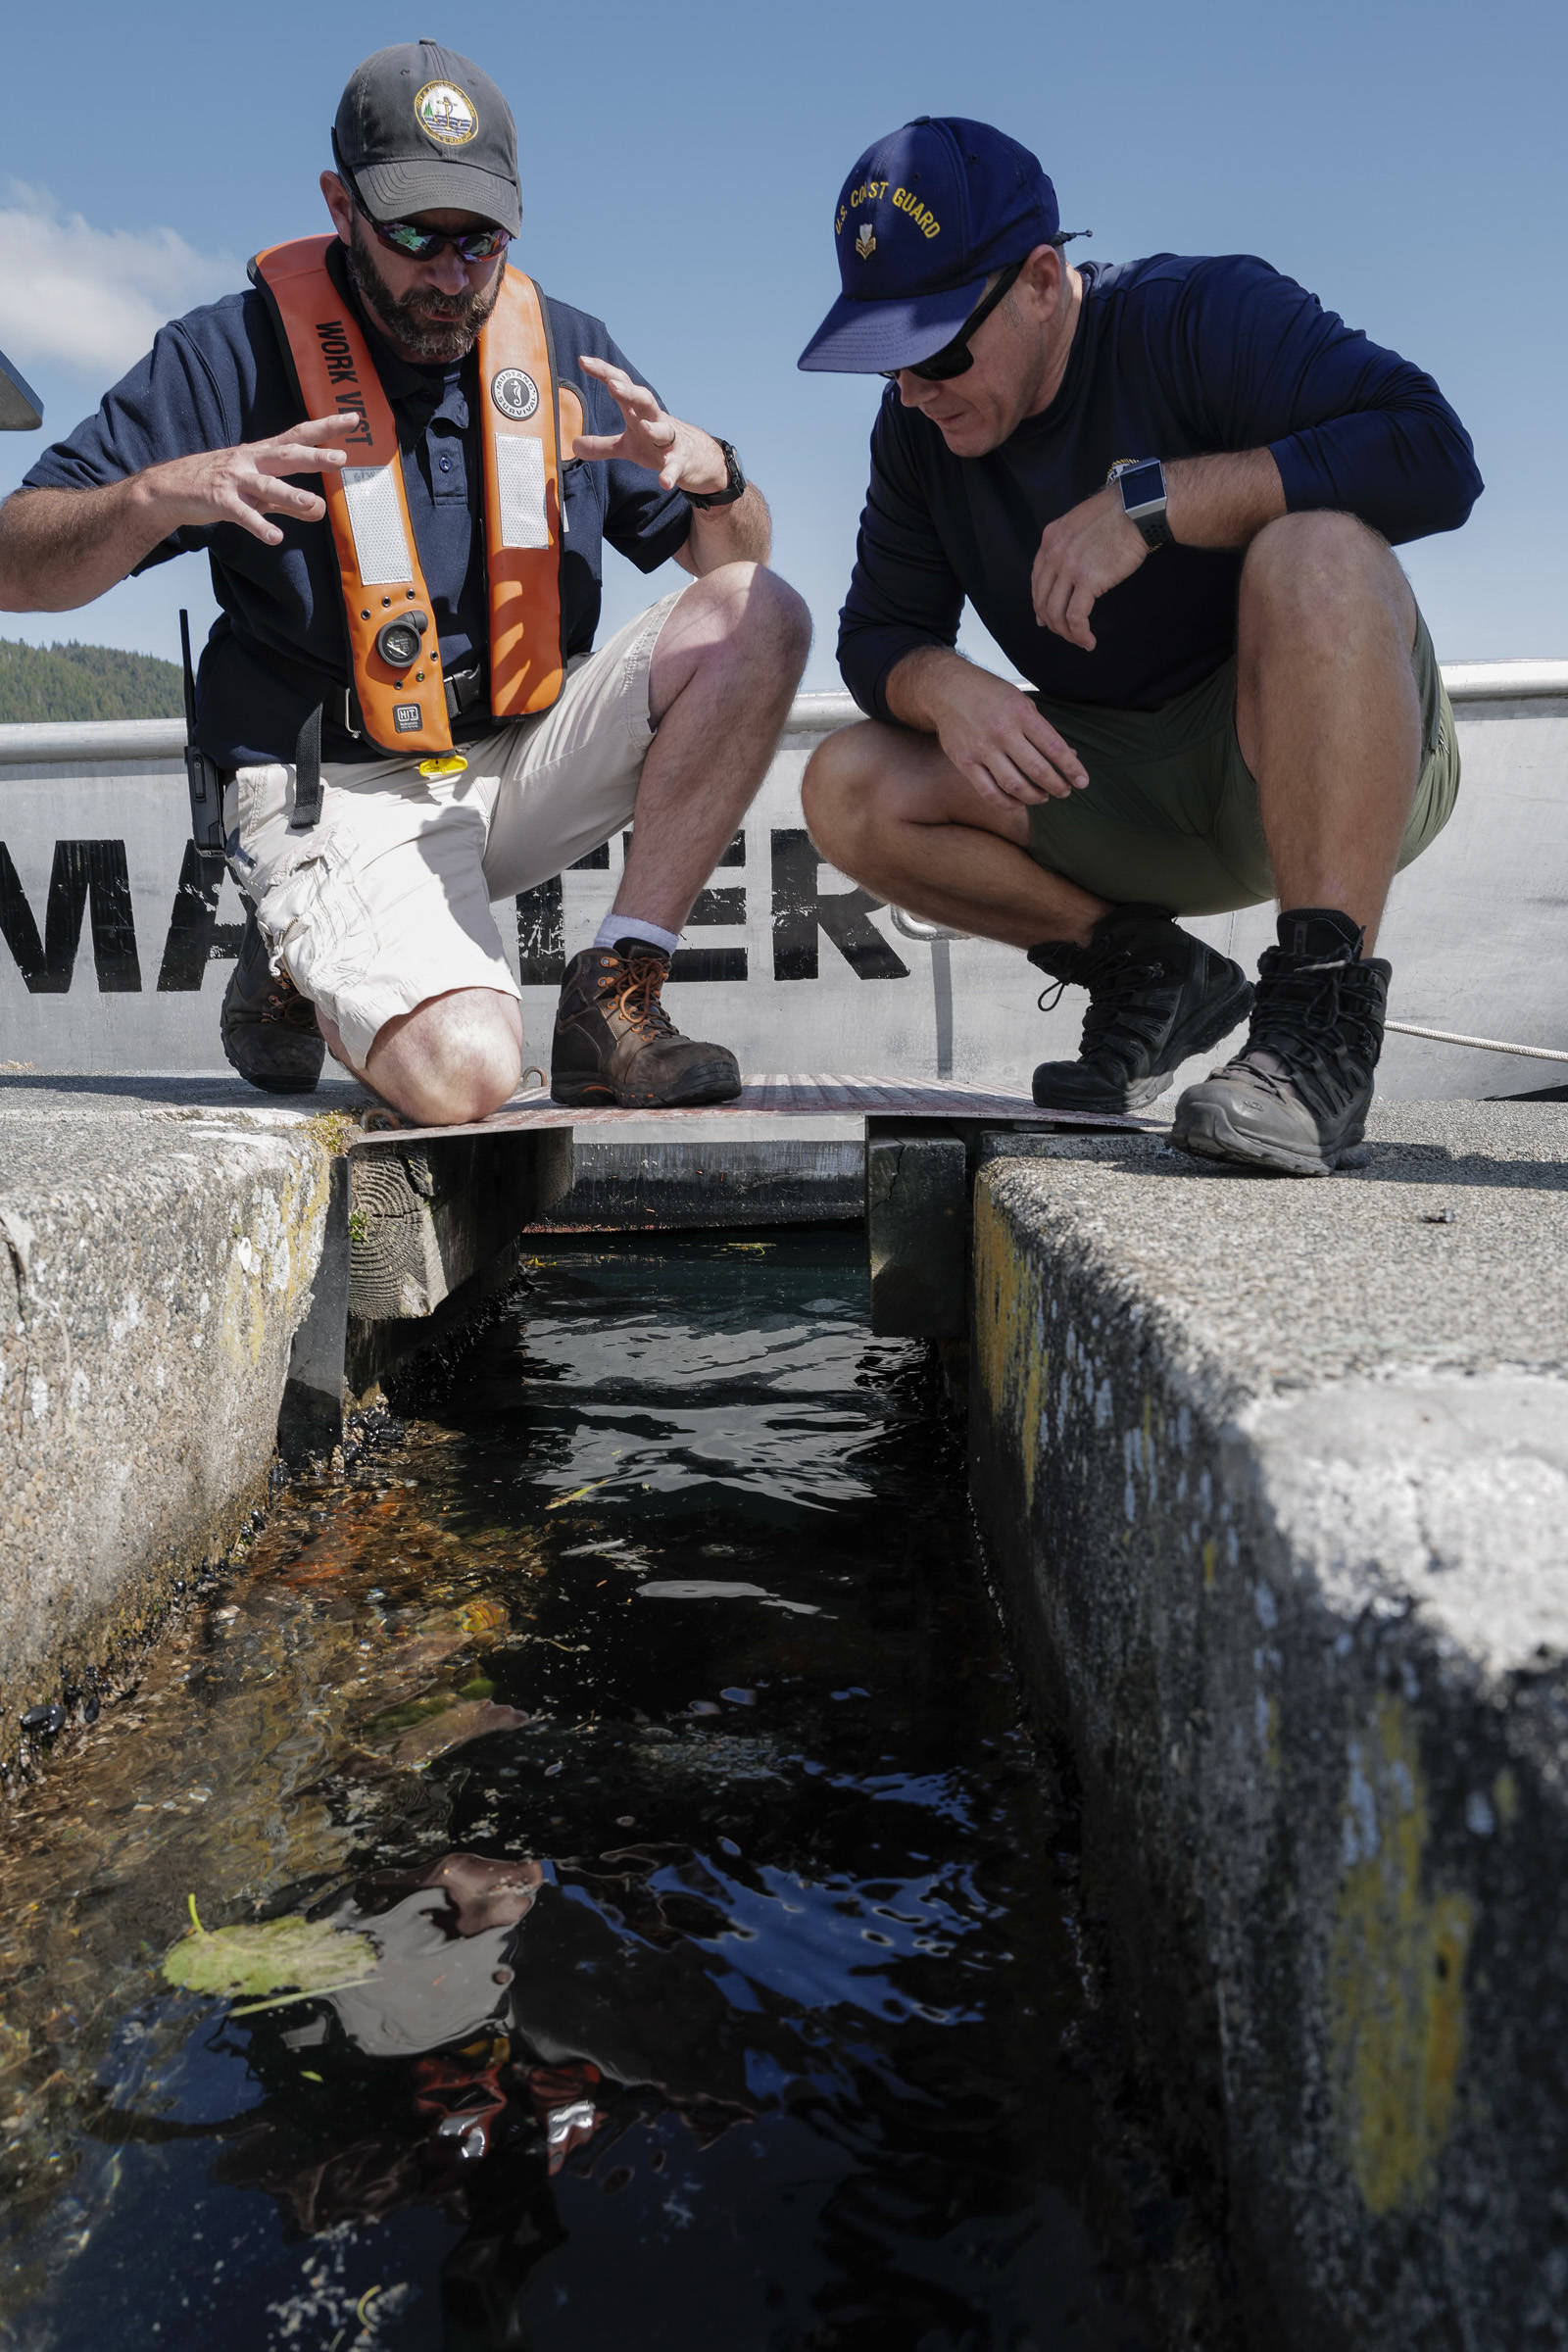 Deputy Harbormaster Matt Creswell, left, explains to the project to Shawn Price, of U.S. Coast Guard Regional Dive Locker West, at the Don D. Statter Boat Harbor in Auke Bay on Friday, Aug. 16, 2019. Members of the U.S. Army's 74th Engineer Dive Detachment and U.S. Coast Guard Regional Dive Locker West worked together to inspect and replace the bolts holding the harbor's breakwater together. (Michael Penn | Juneau Empire)